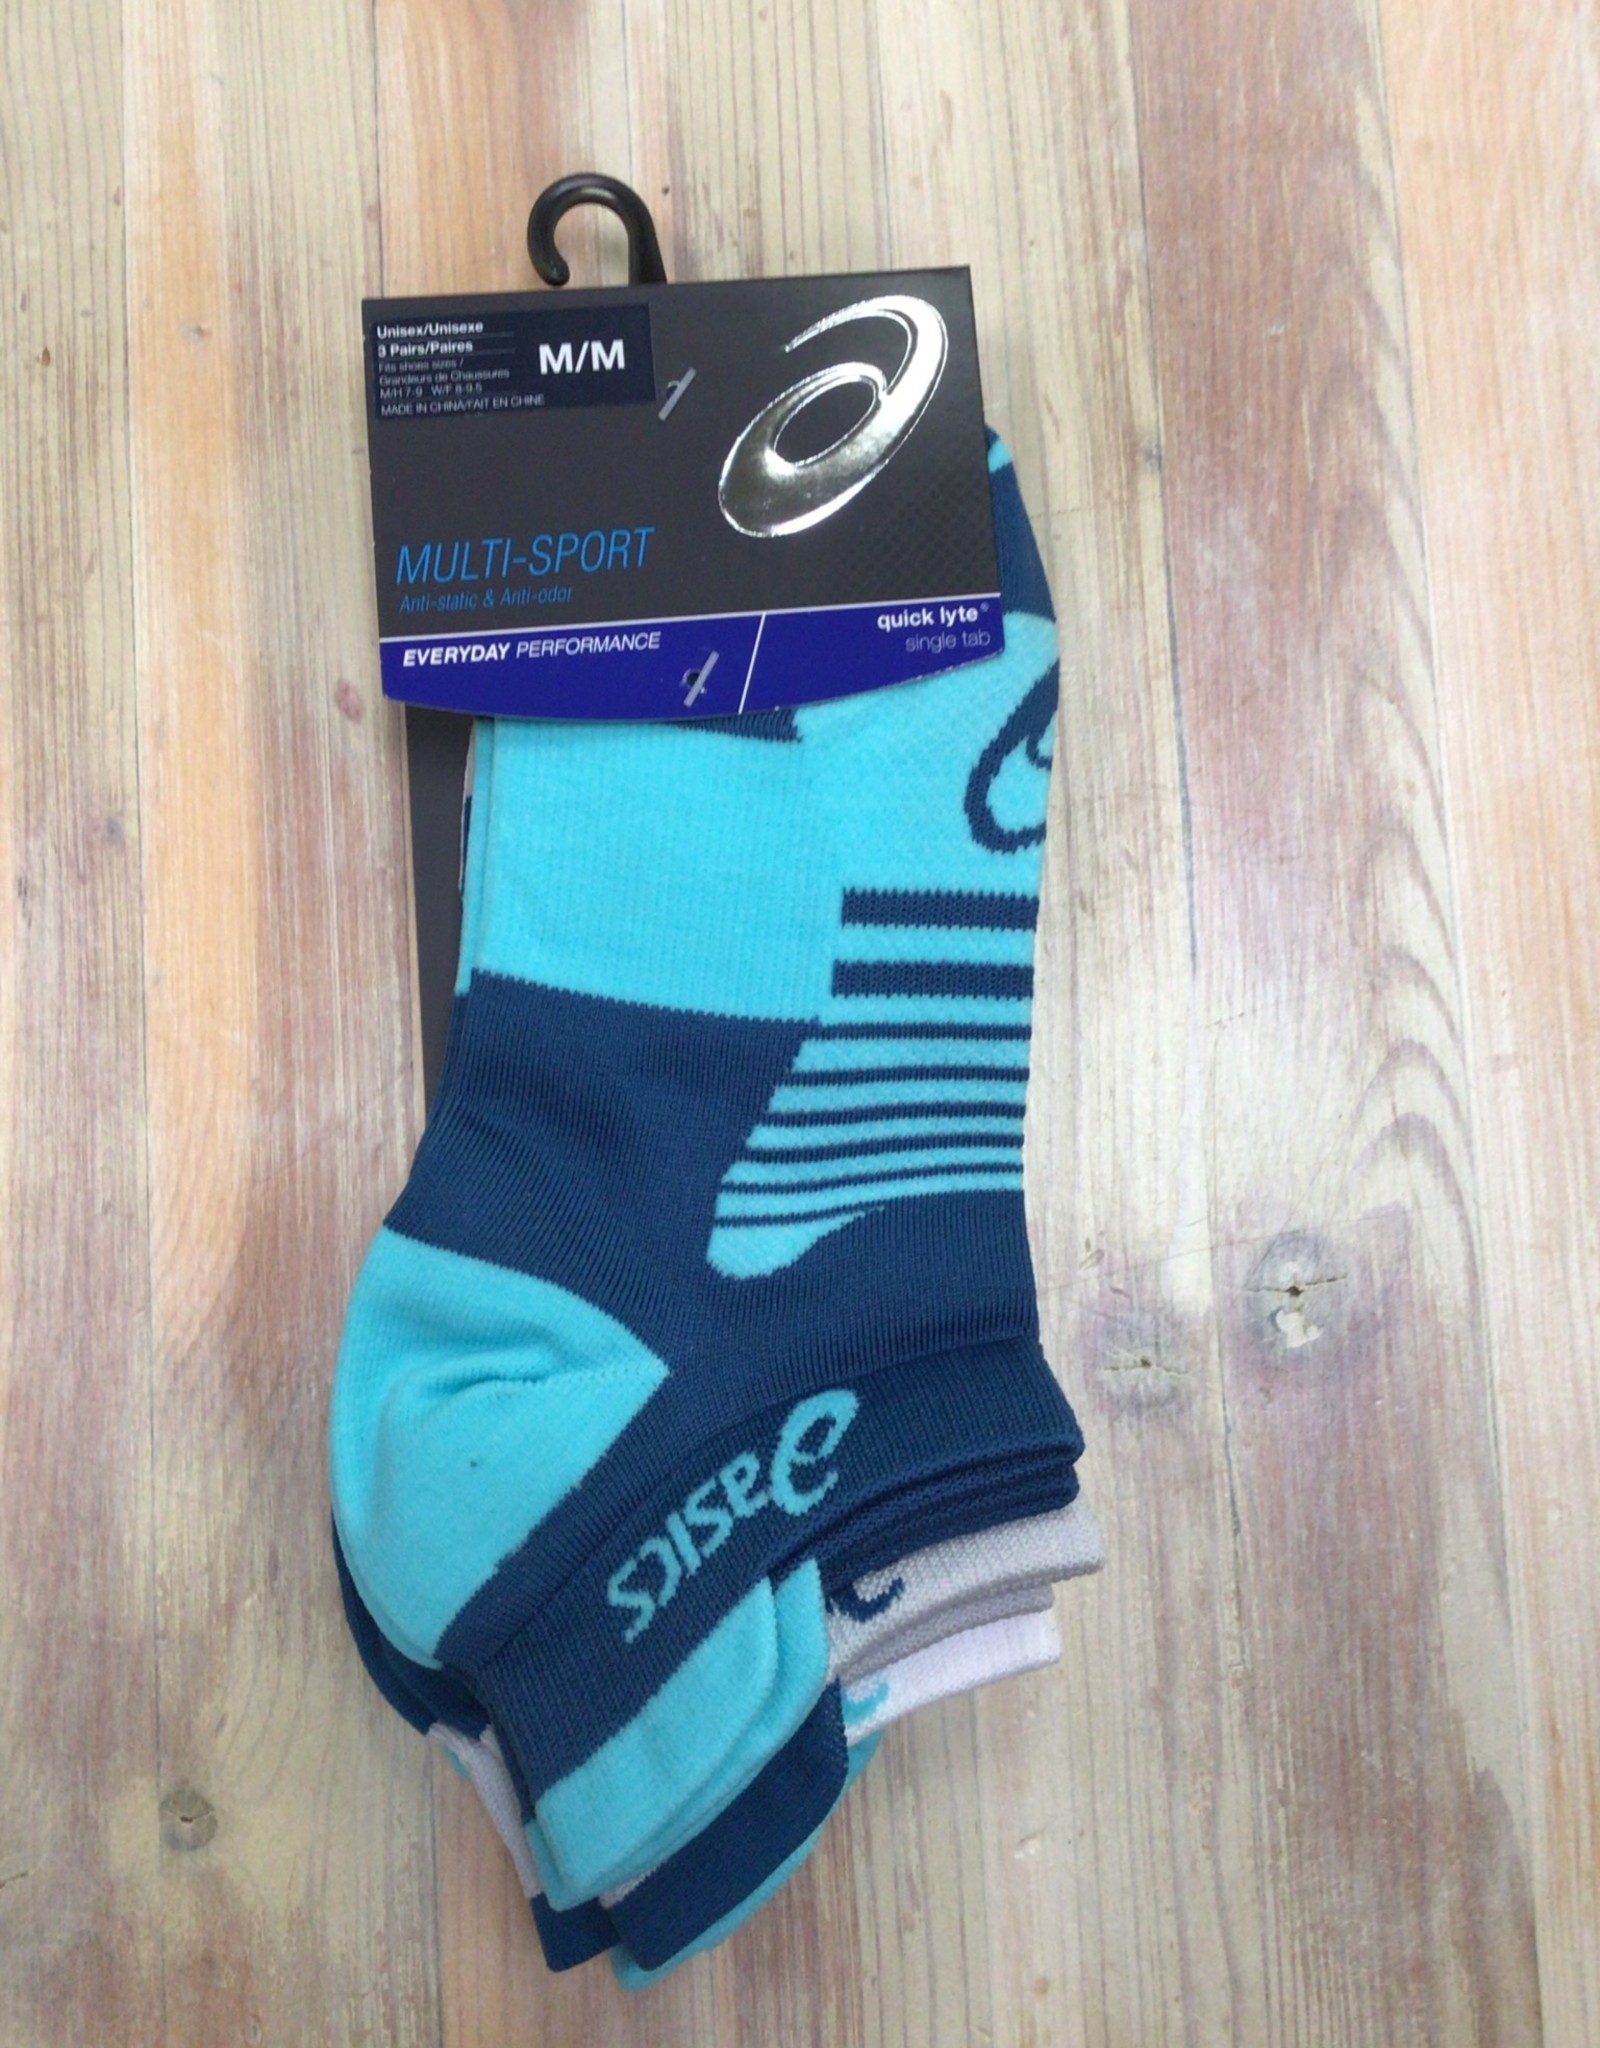 Asics Asics 3032A032 Quick Lyte Plus 3-pack Socks Ladies'